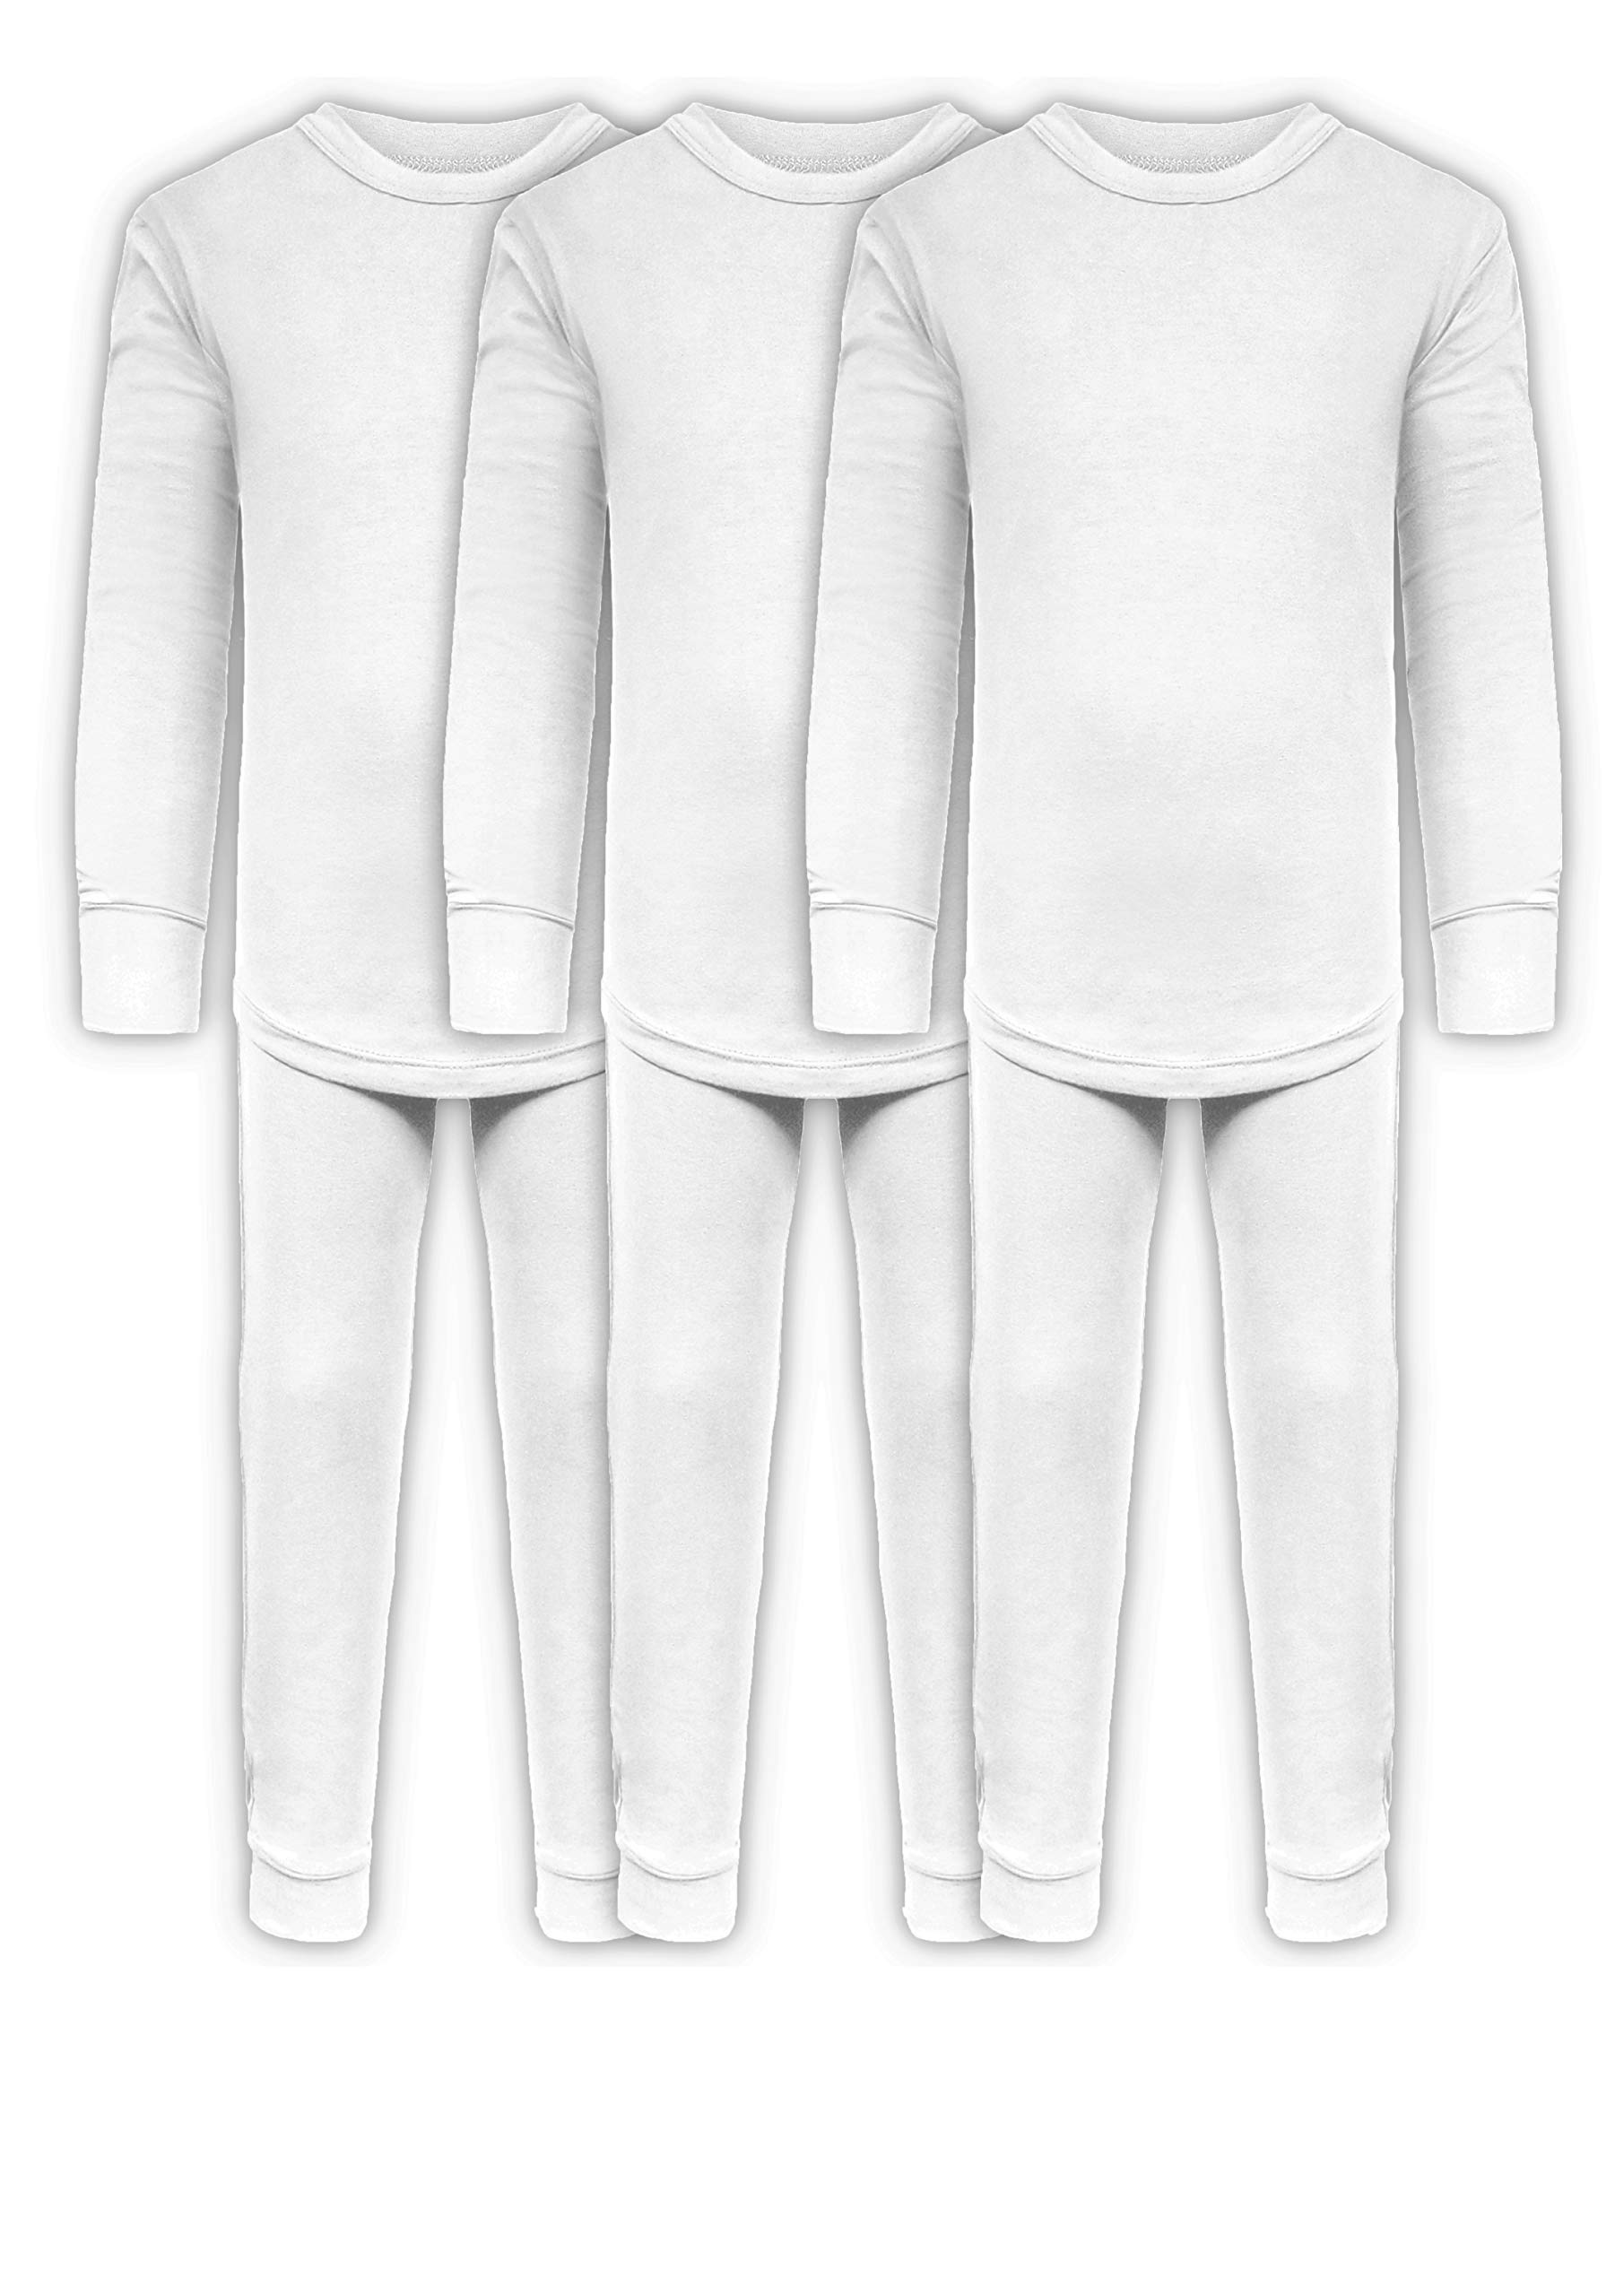 Boys Long John Ultra-Soft Cotton Stretch Base Layer Underwear Sets / 3 Long Sleeve Tops + 3 Long Pants - 6 Piece Mix & Match (3 Sets / 6 Pc -White, 5/6) by ANDREW SCOTT